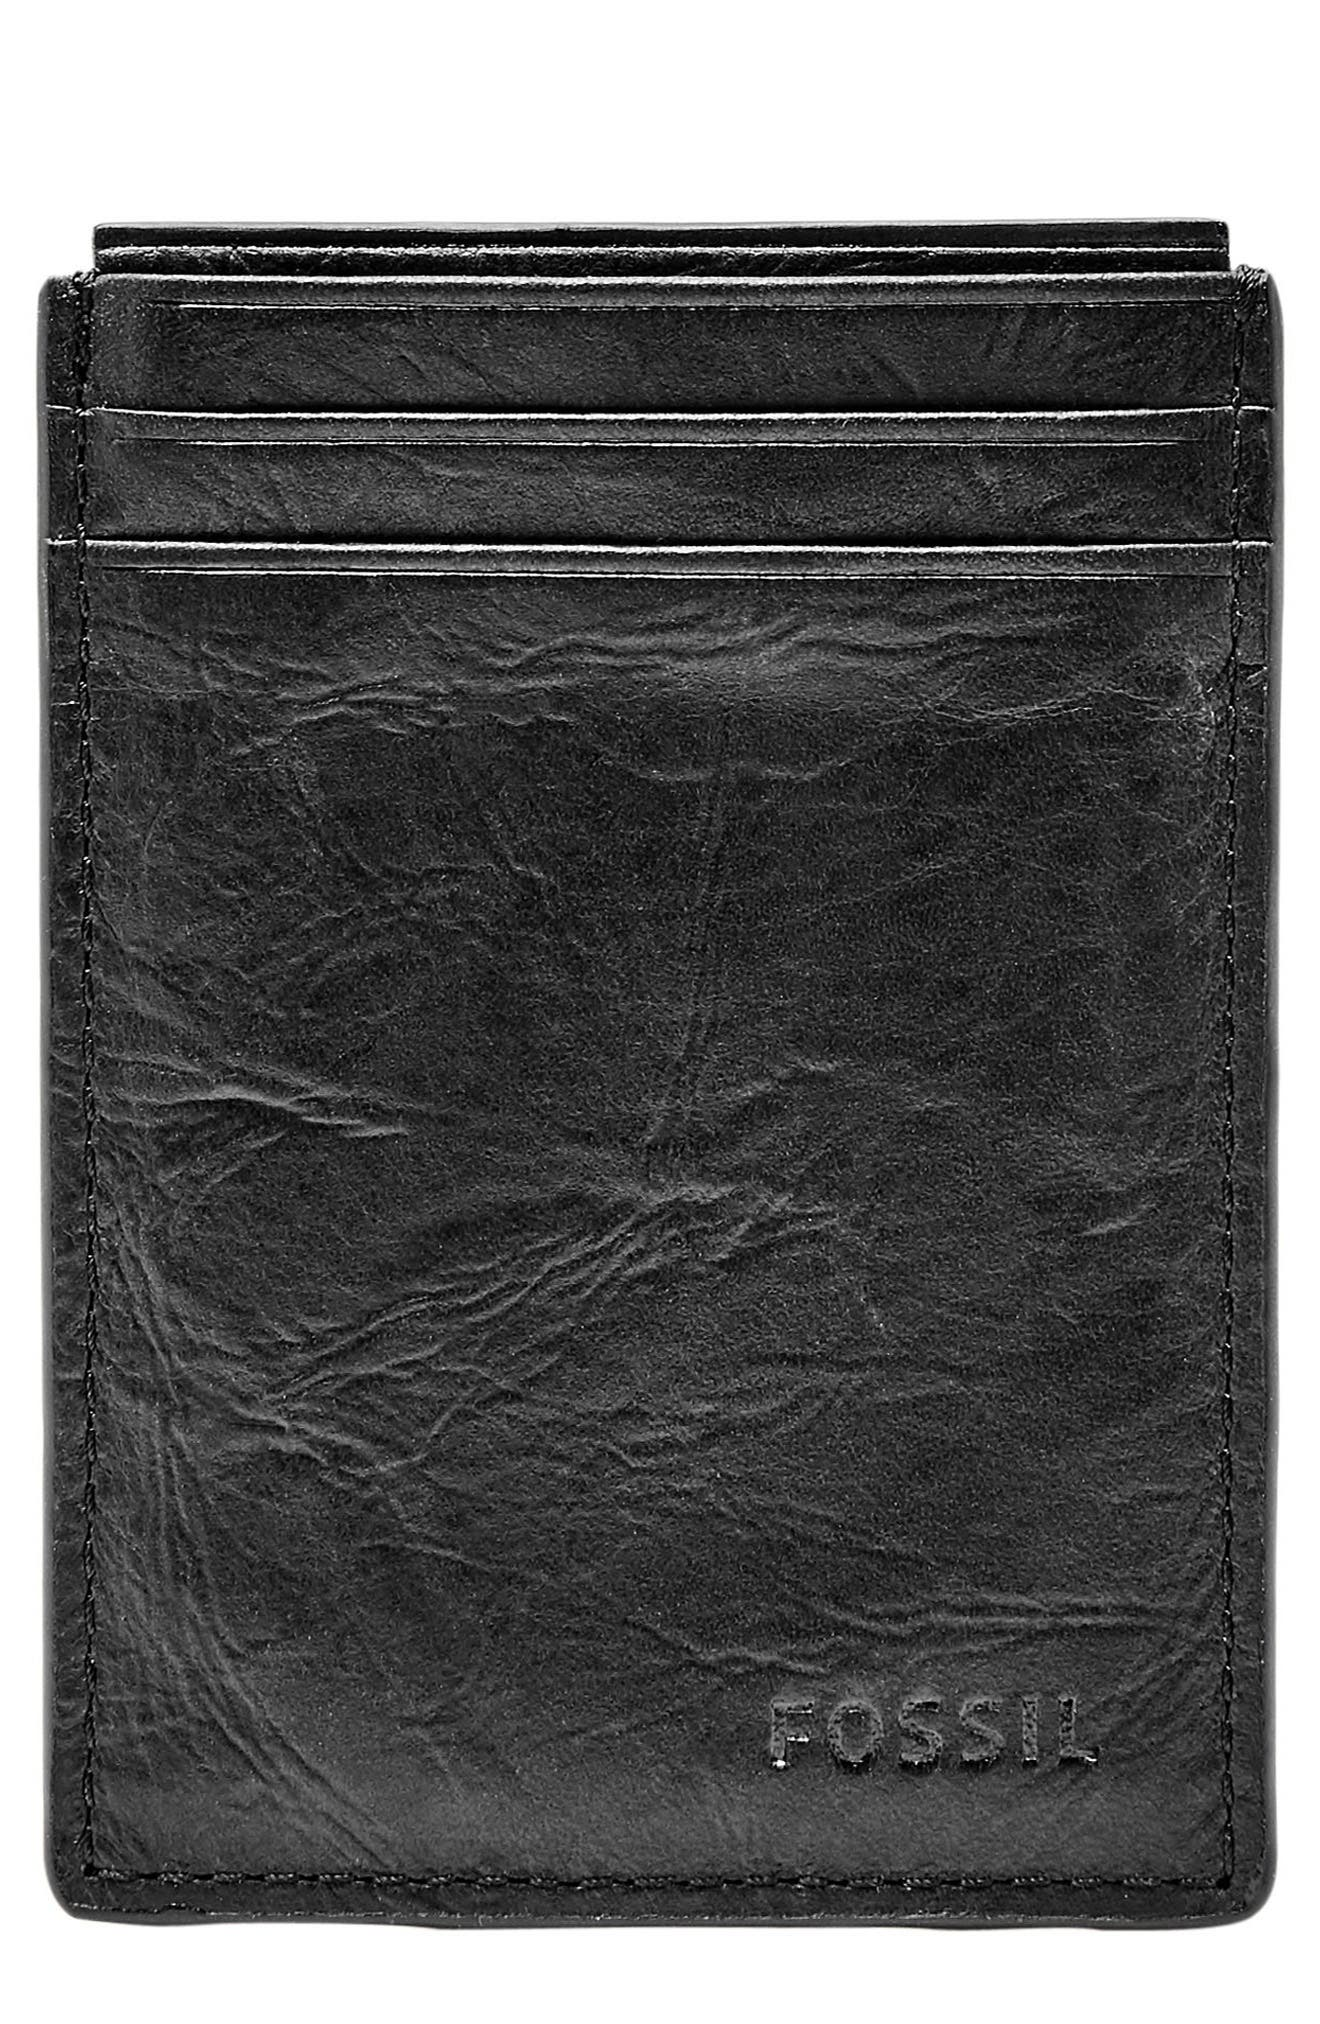 Main Image - Fossil Neel Magnetic Leather Money Clip Card Case